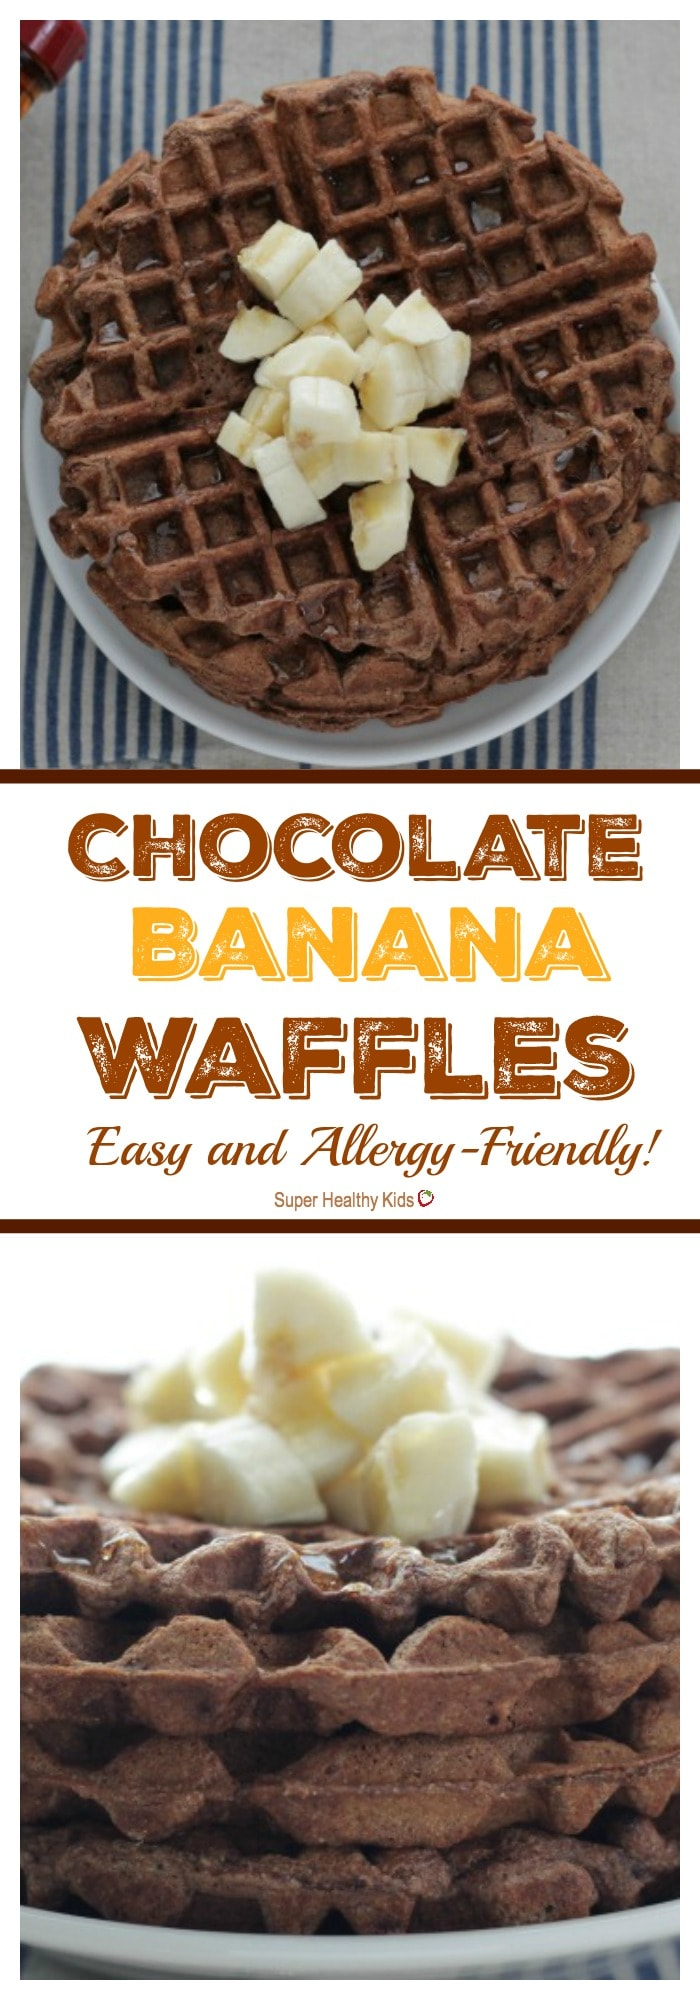 Healthy Chocolate Banana Waffles. A MUST have recipe! http://www.superhealthykids.com/chocolate-banana-waffles-easy-allergy-friendly/